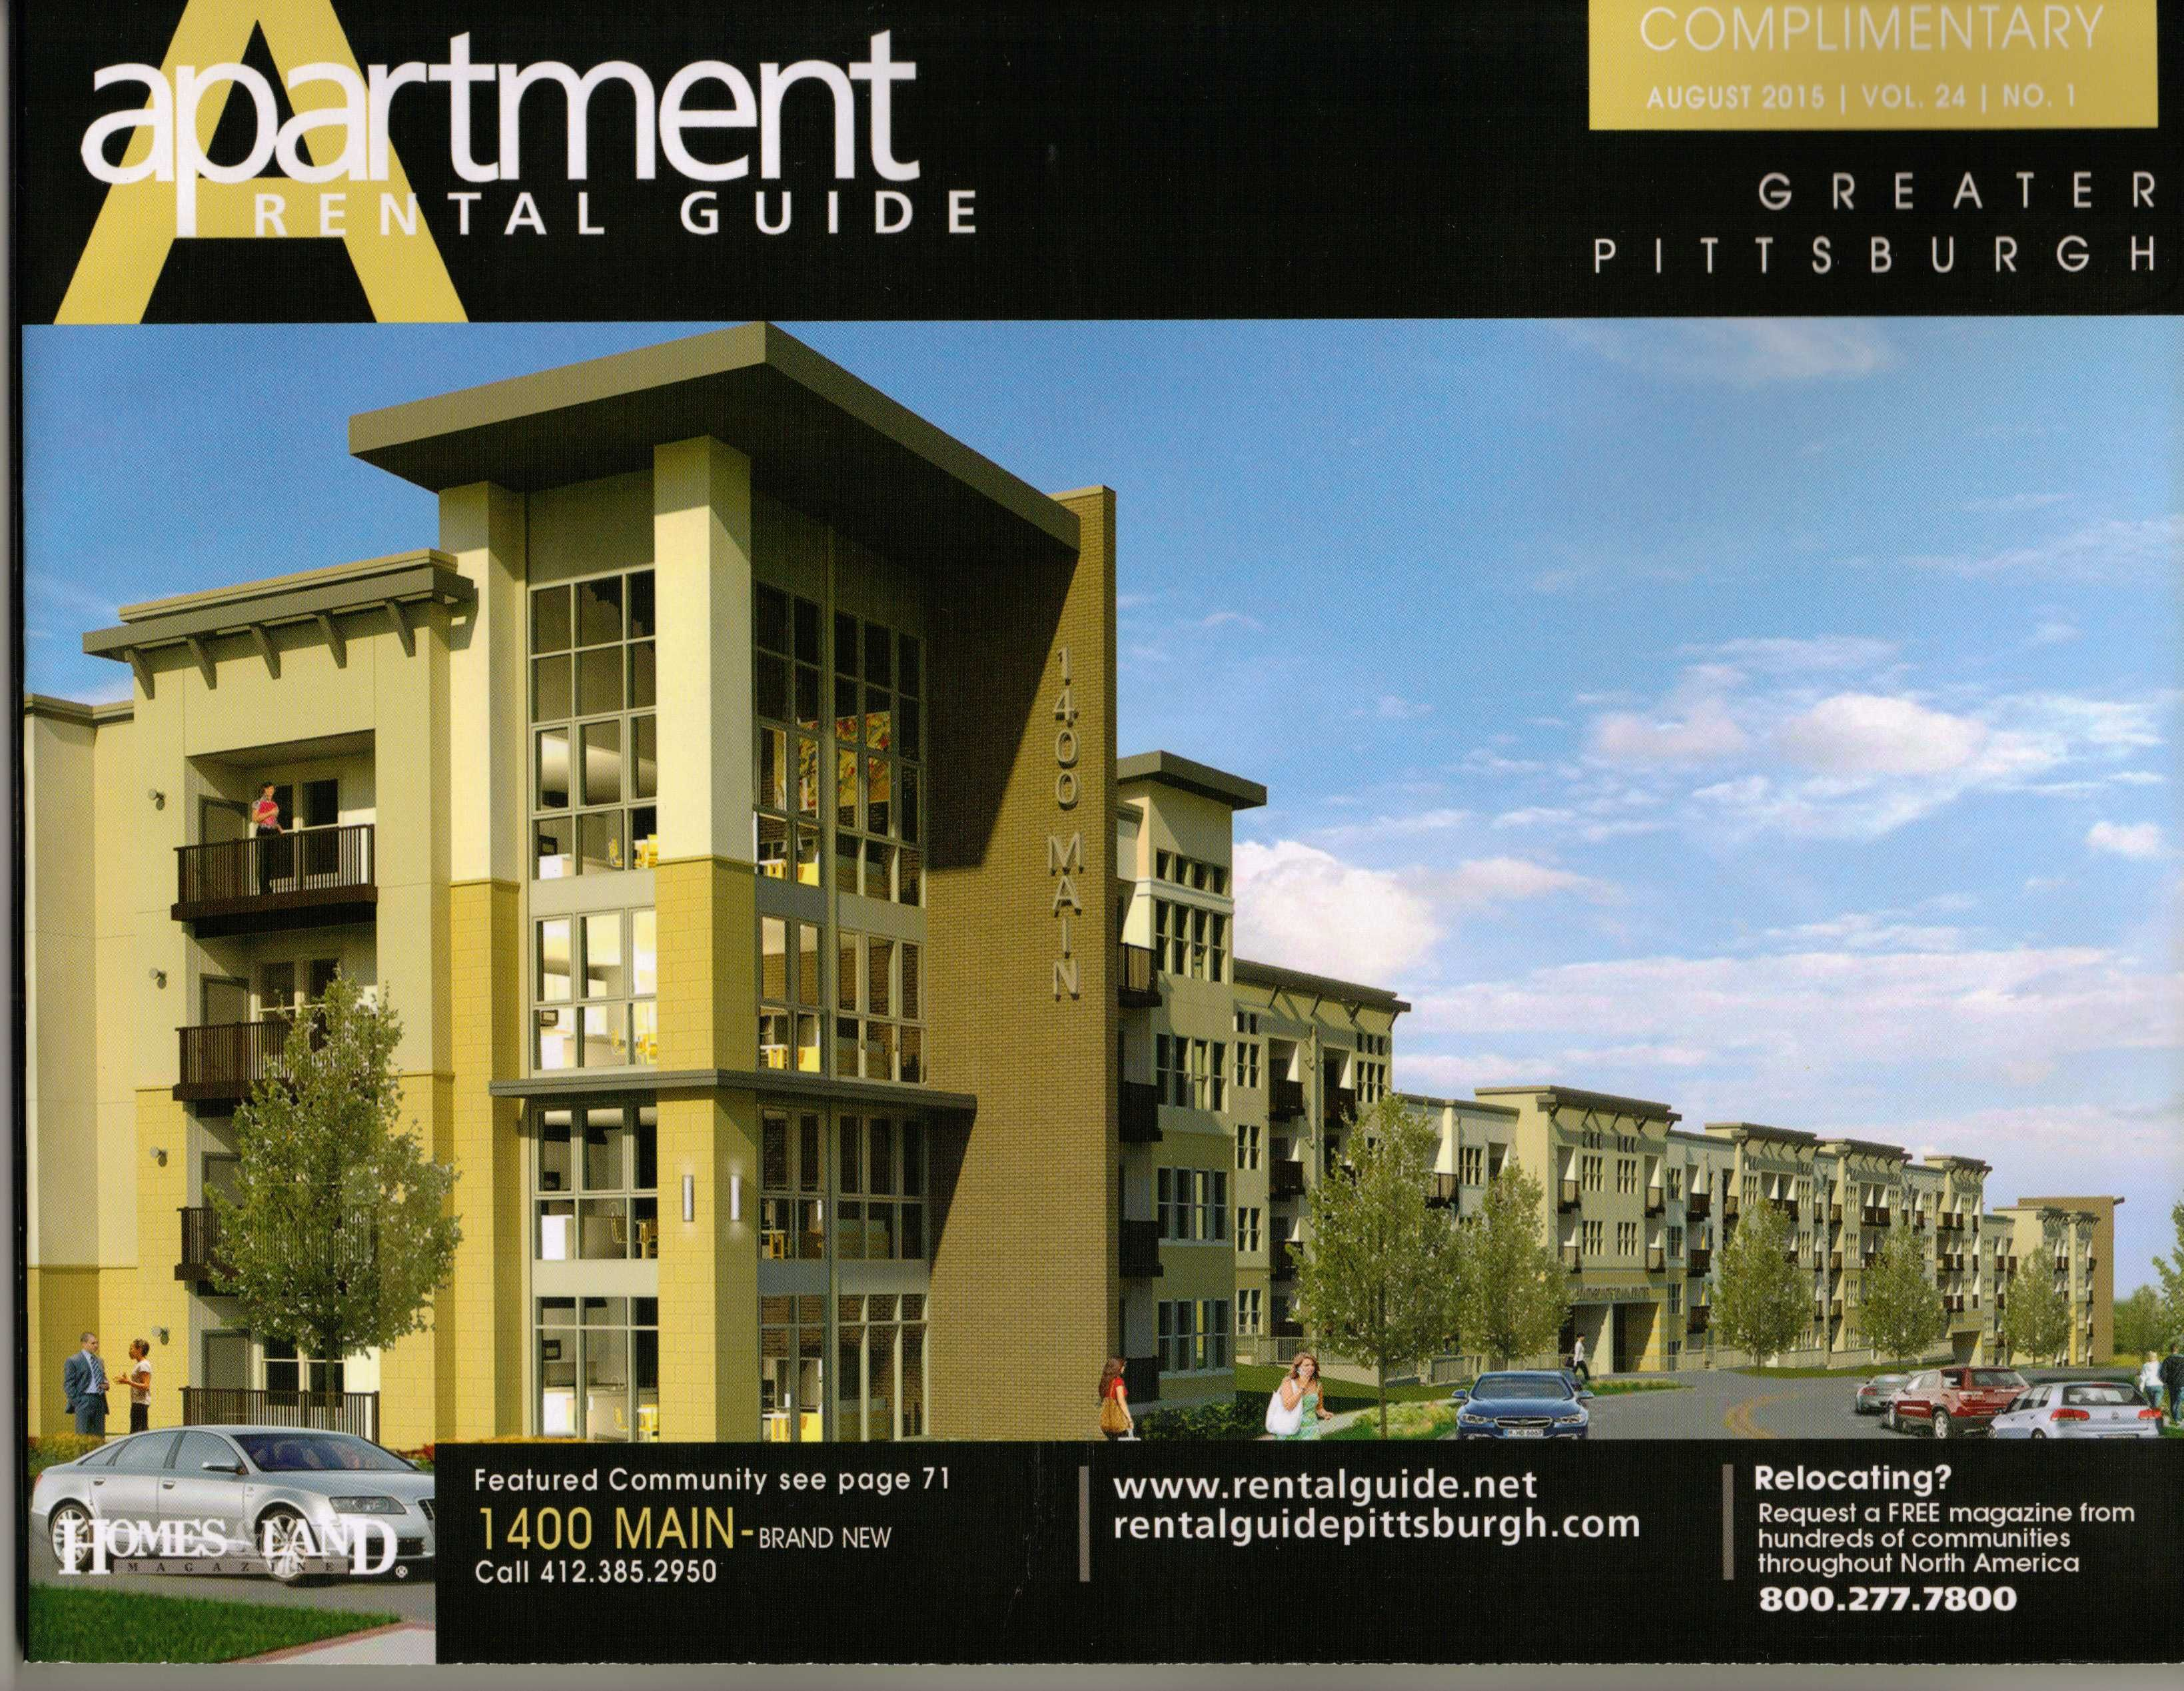 1400 MAIN is a brand new ultra luxury apartment munity located